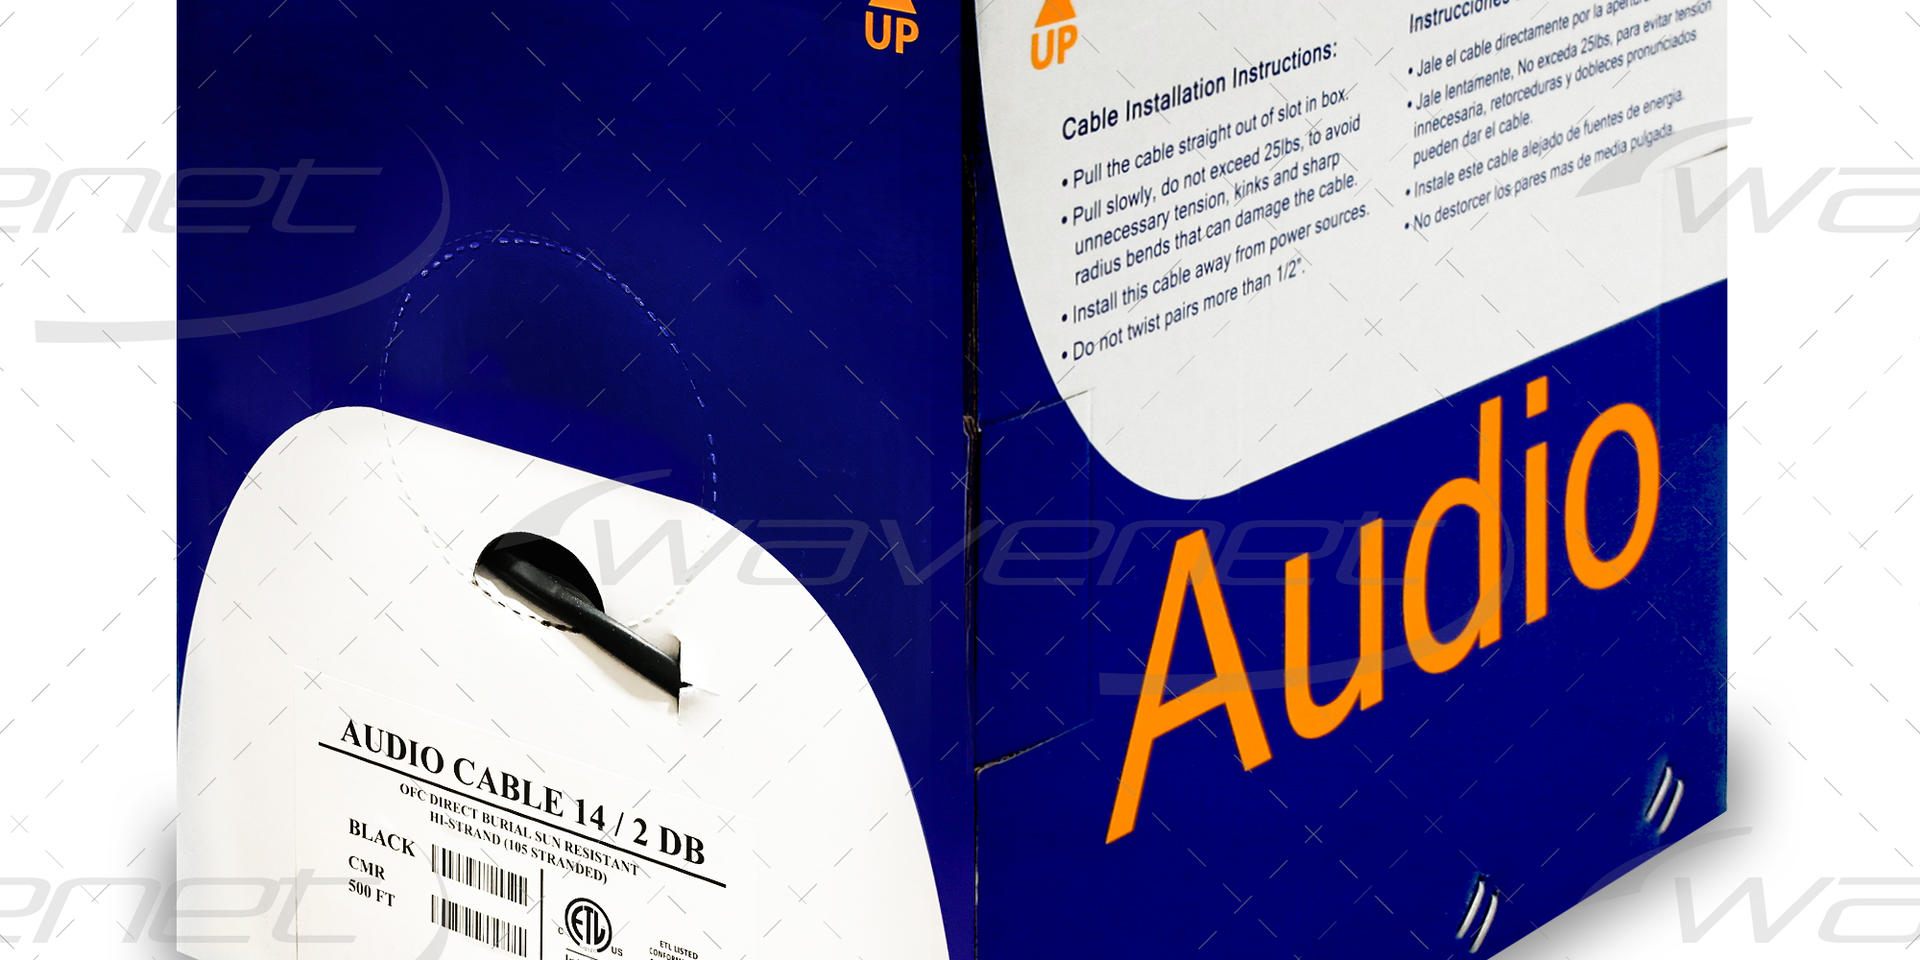 AUDIO CABLE 14/2 DB UV RATED 500'